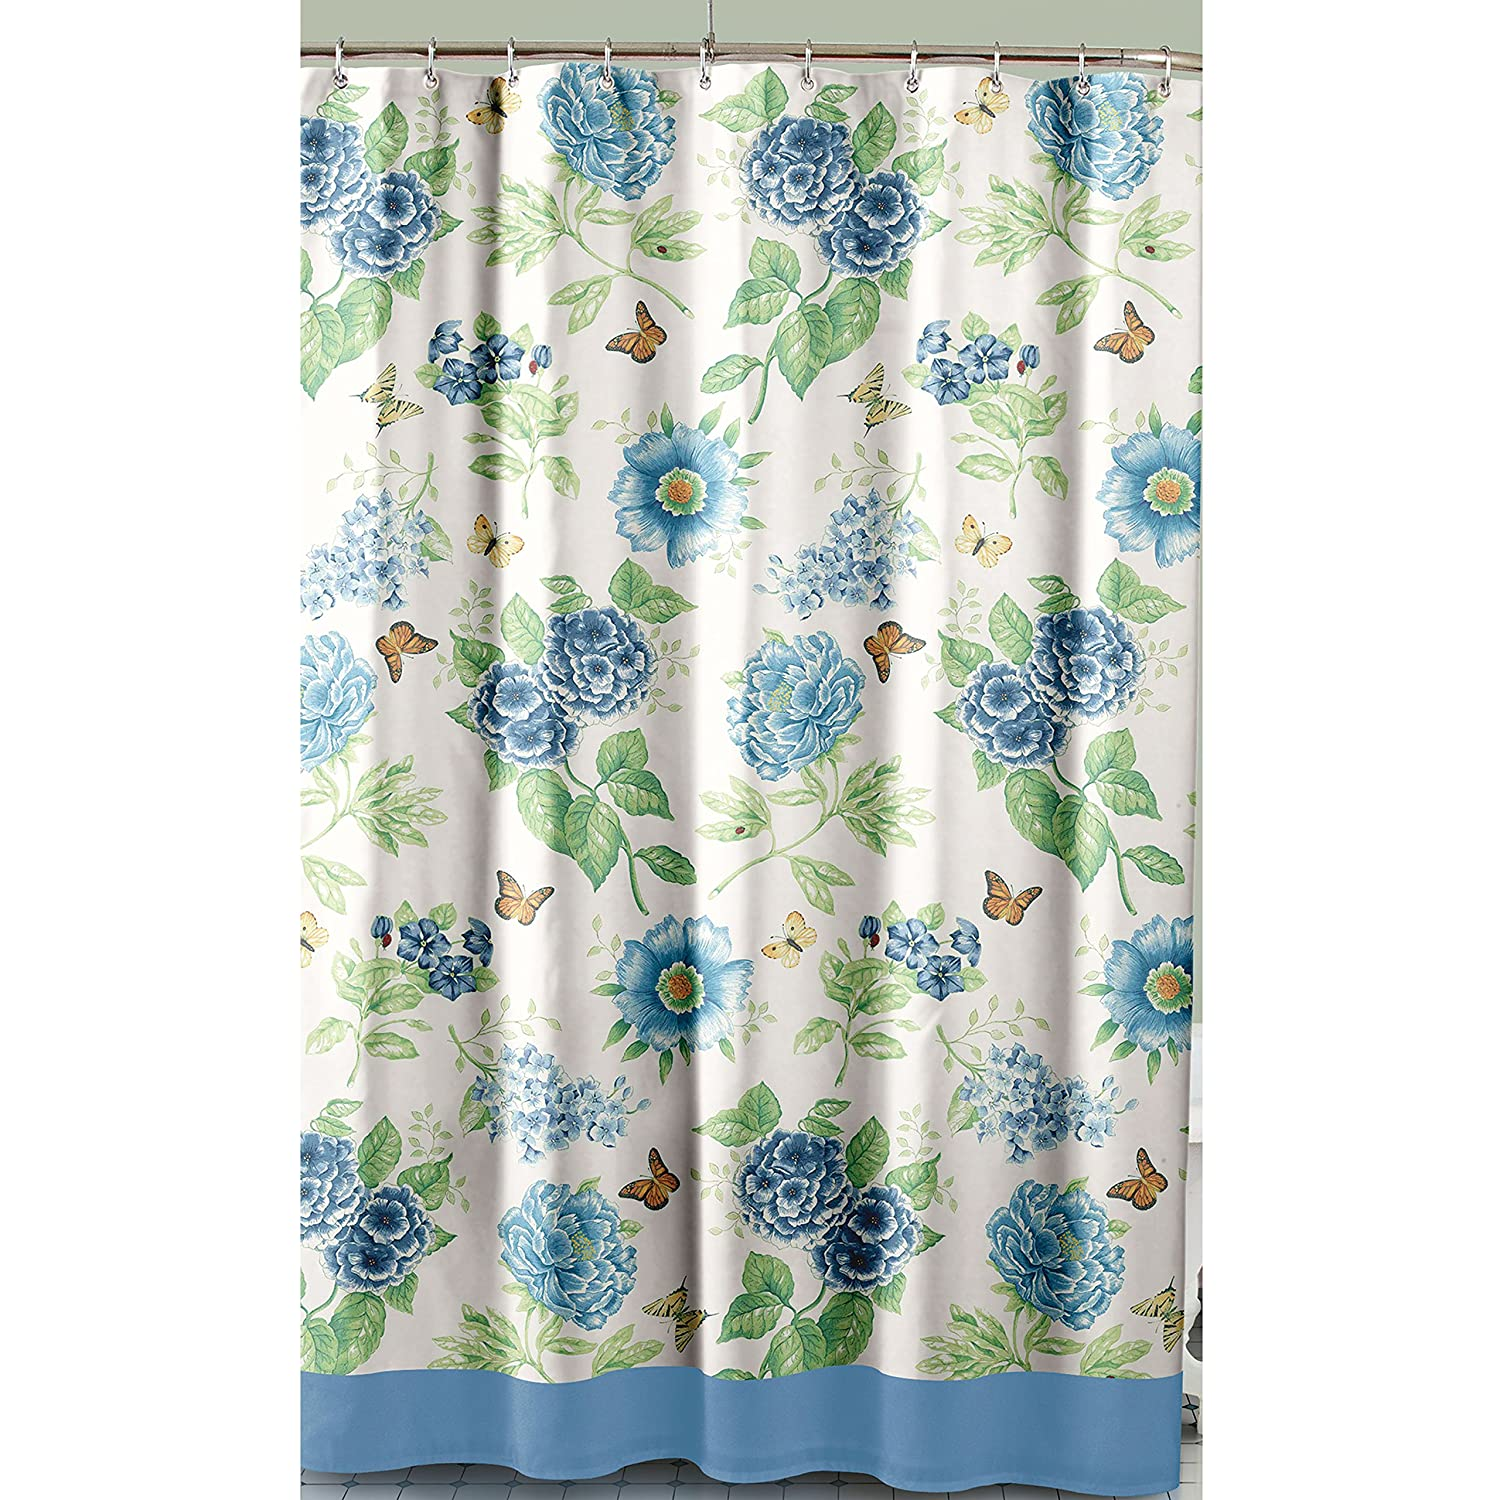 Colorful shower curtain - Multi Color Shower Curtains Part 17 Amazon Com Lenox Printed Shower Curtain